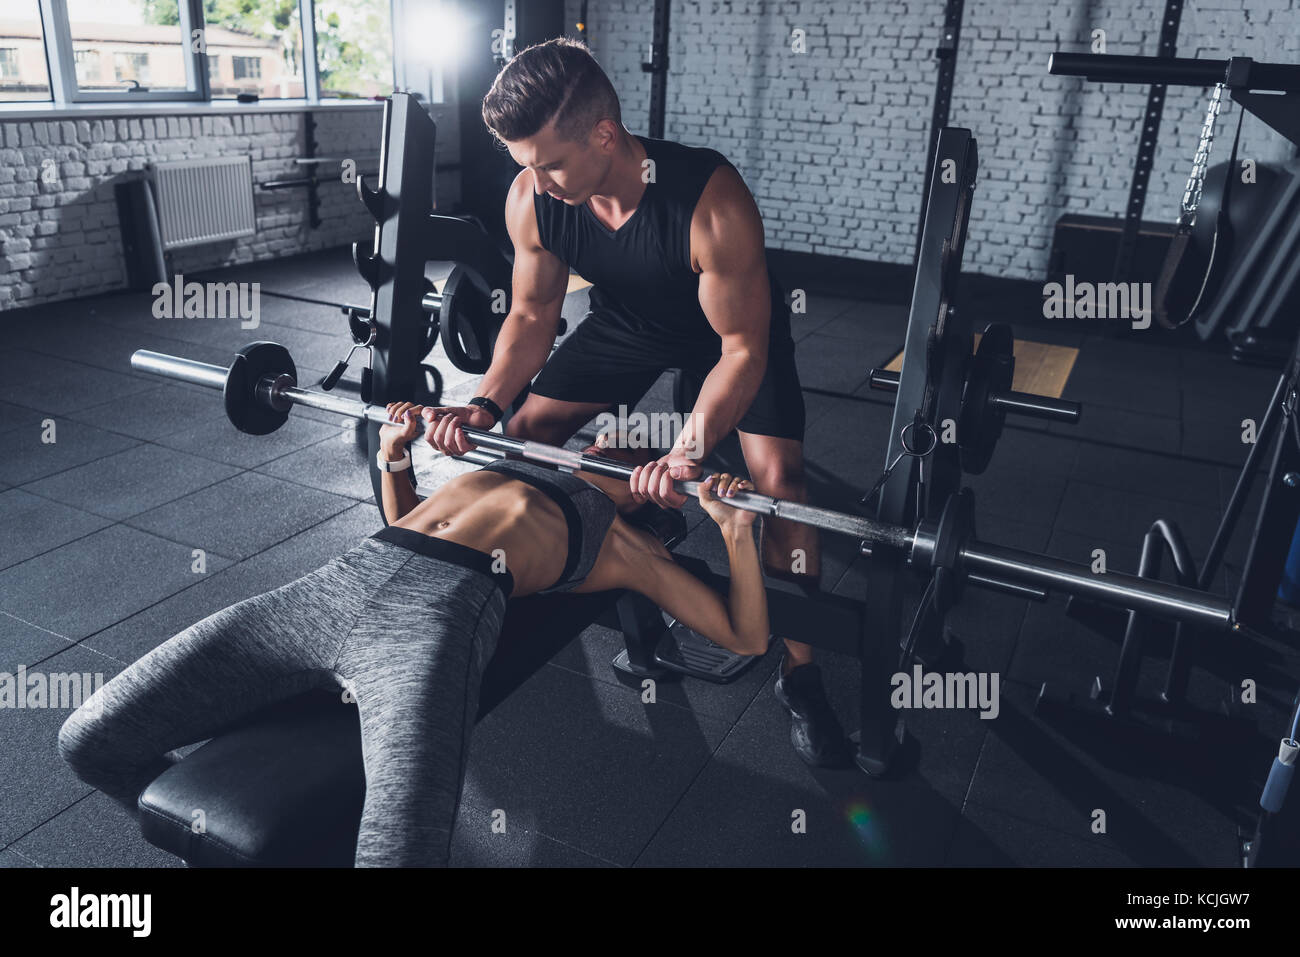 trainer helping woman weightlifting - Stock Image